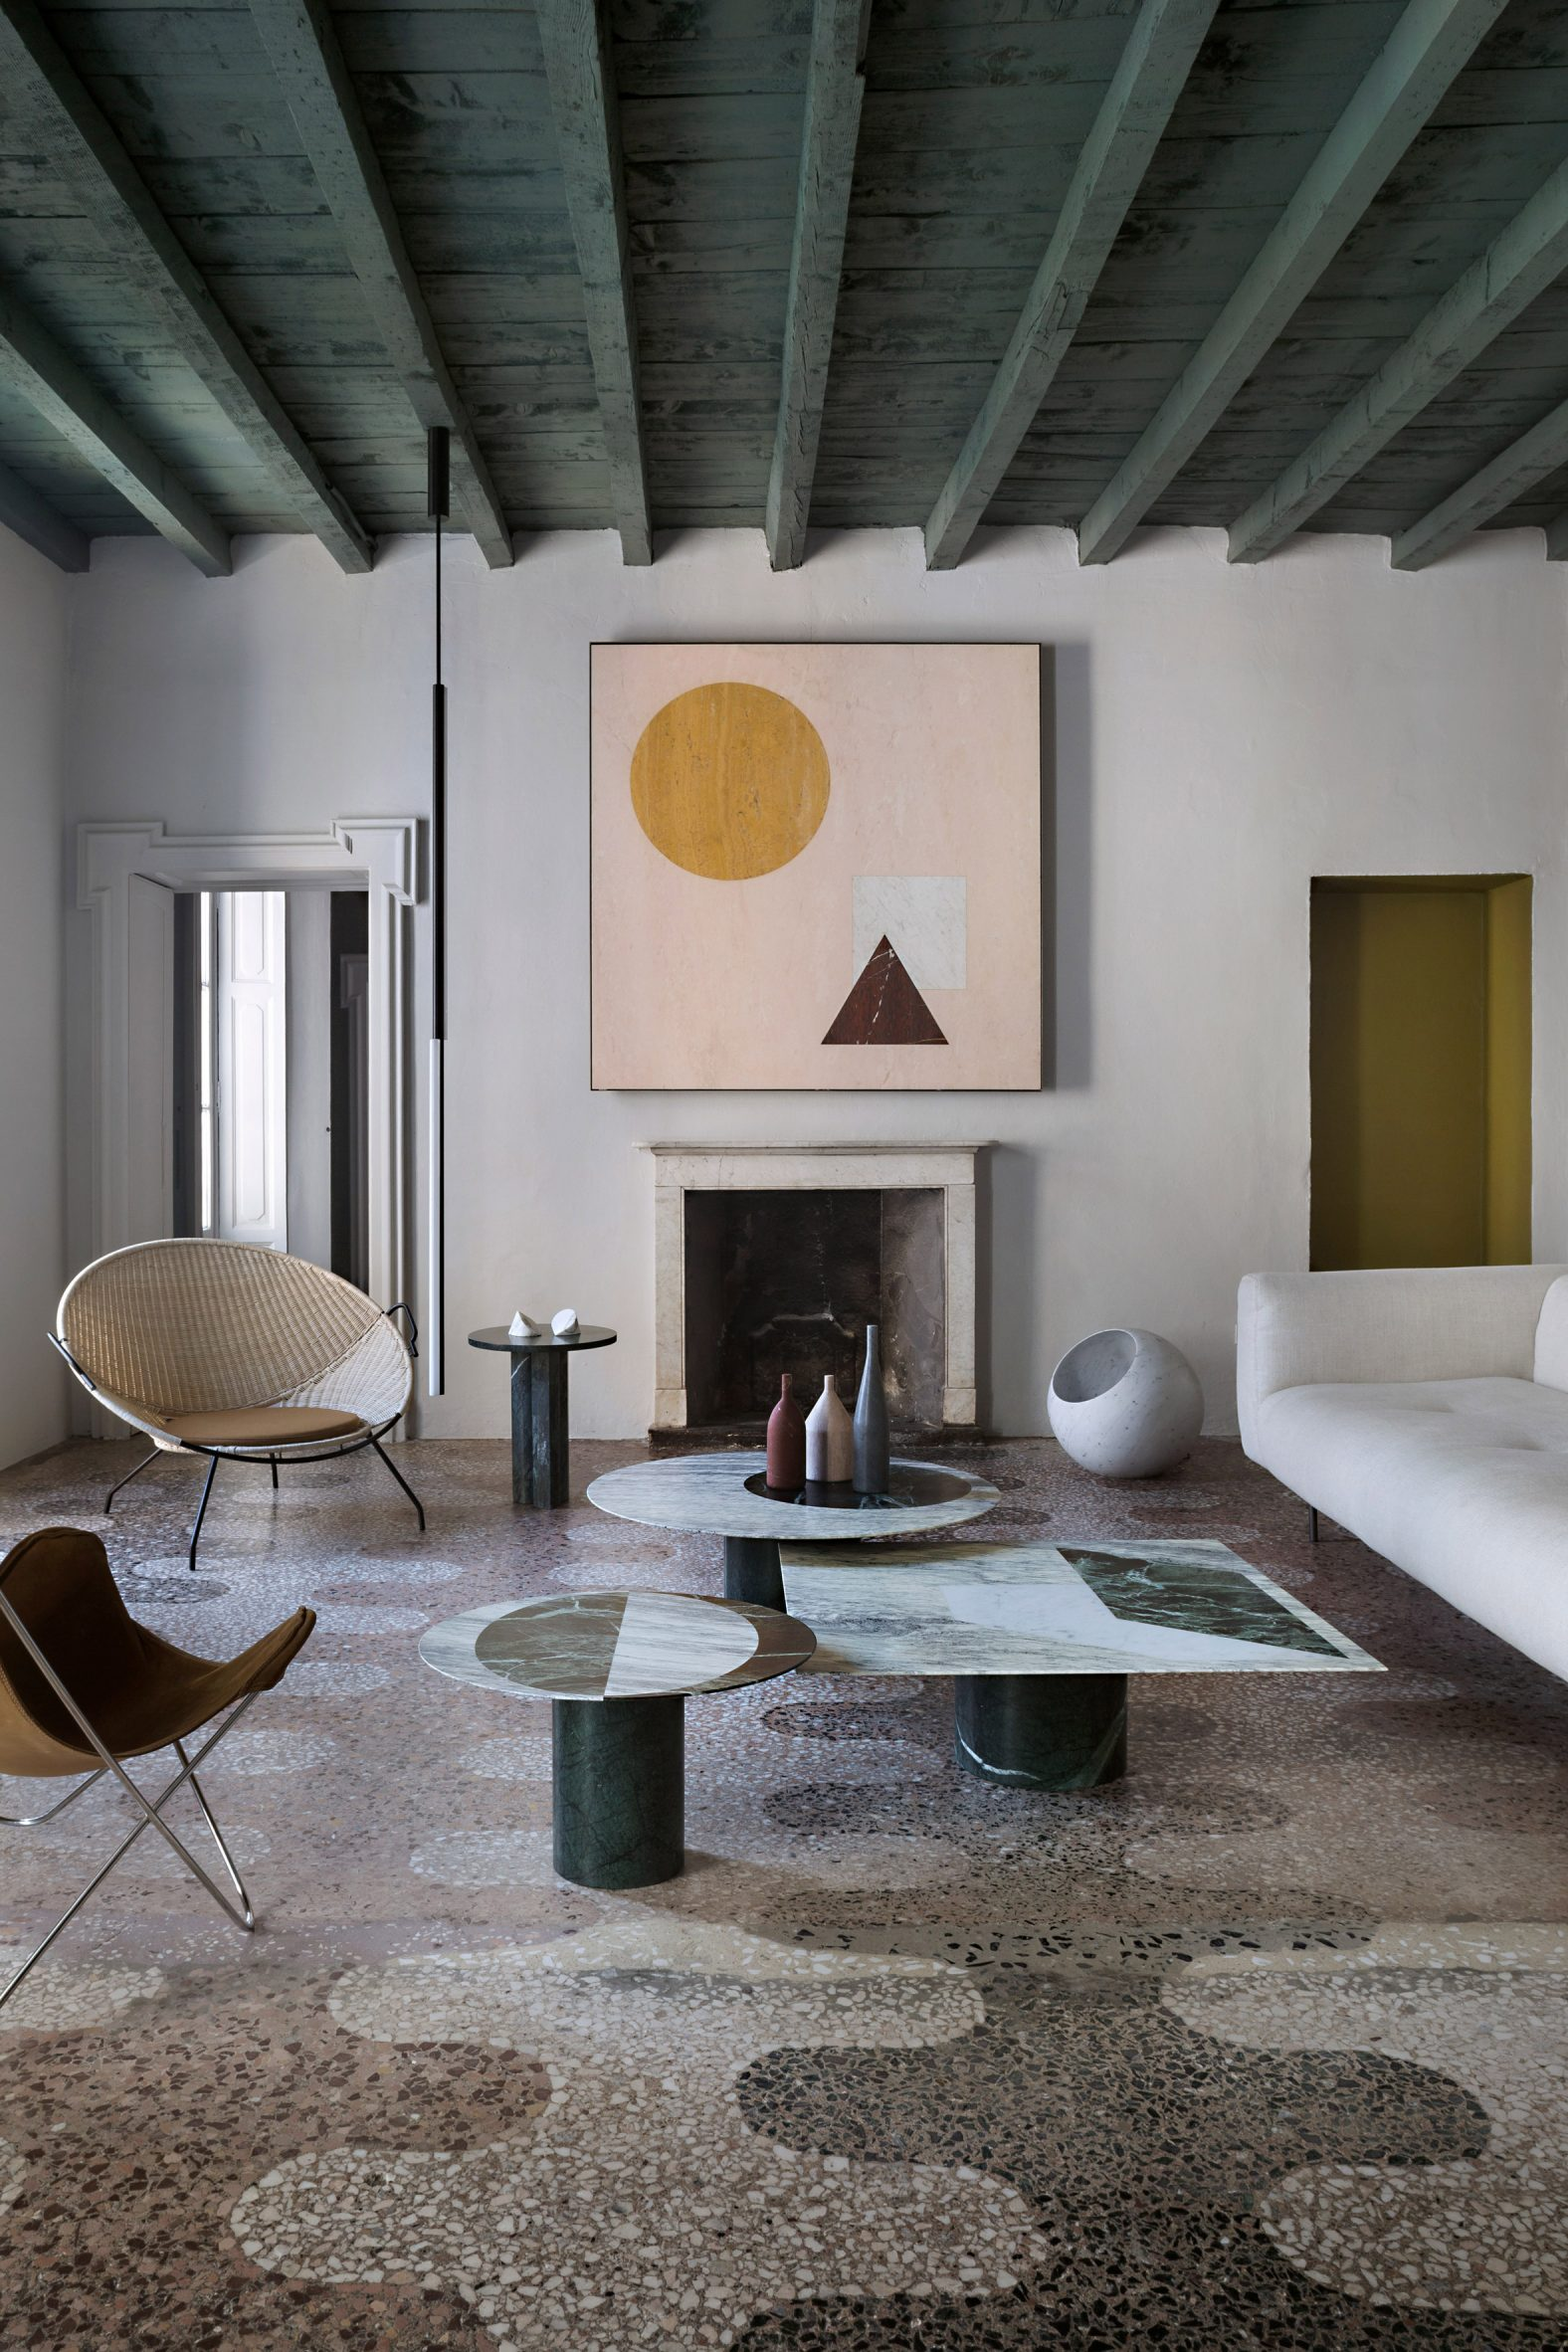 Art-filled interior space in Italy